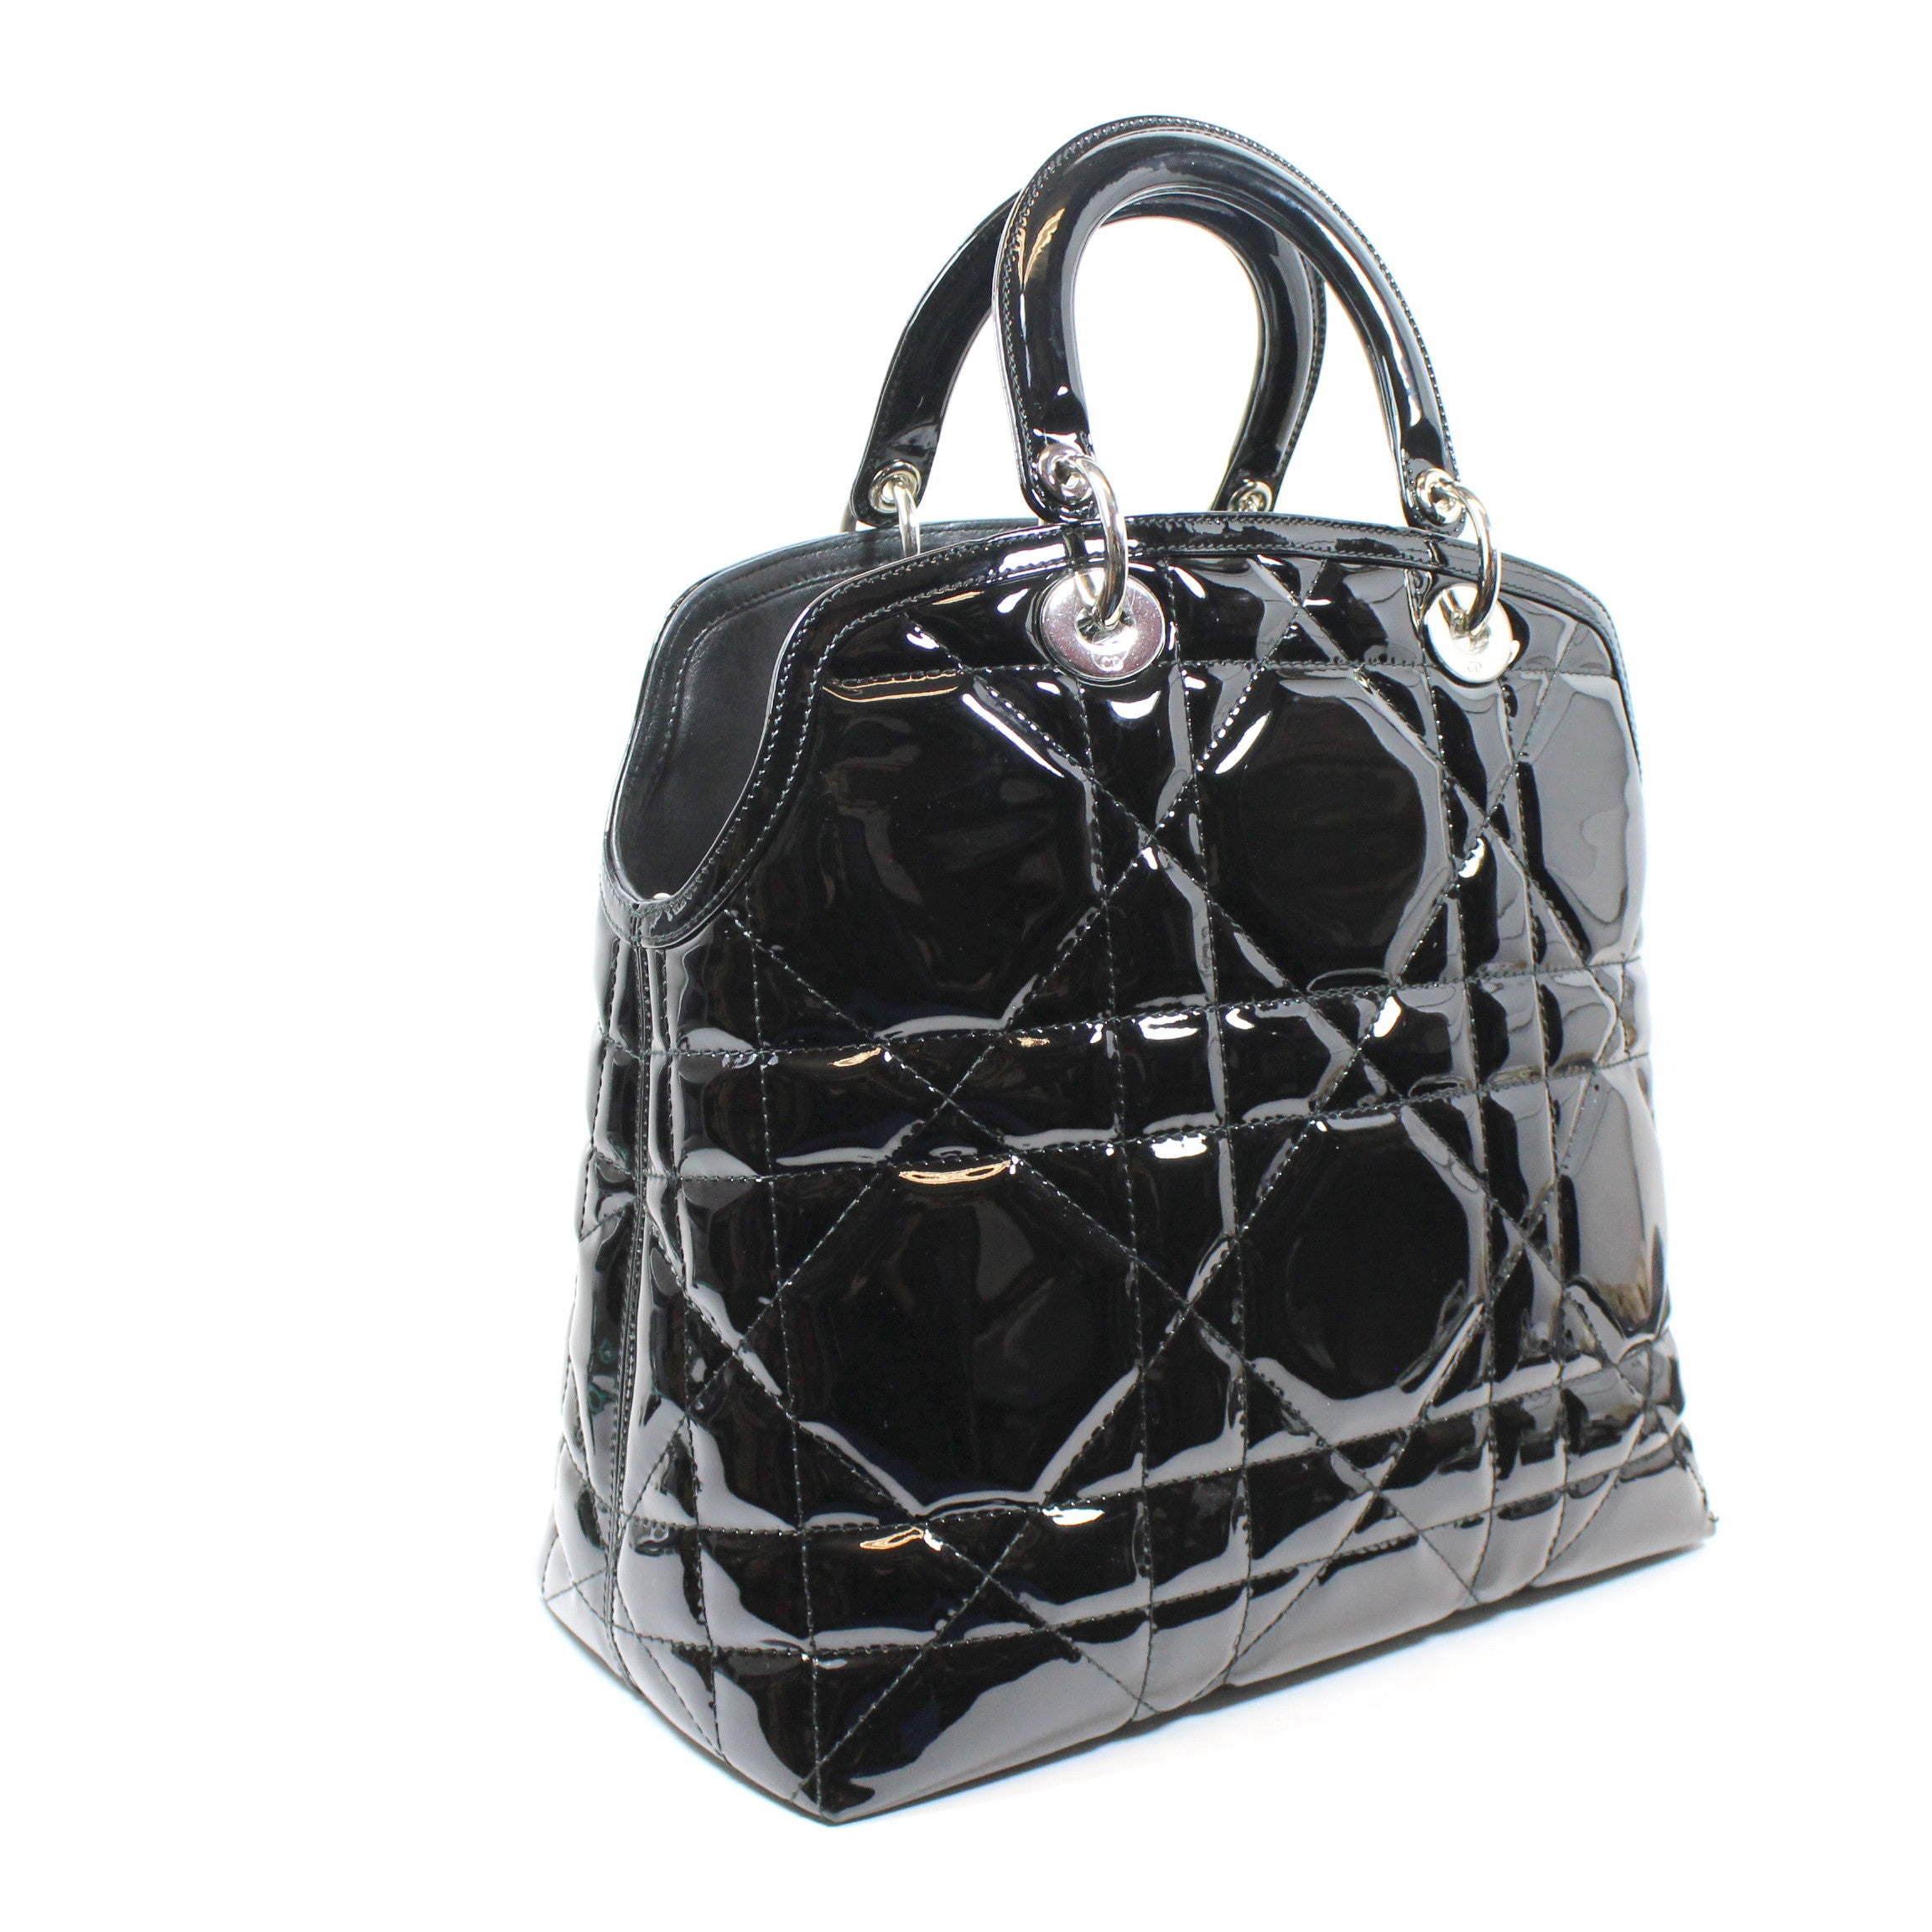 Christian Dior Cannage Quilted Patent Leather 'Granville' Tote